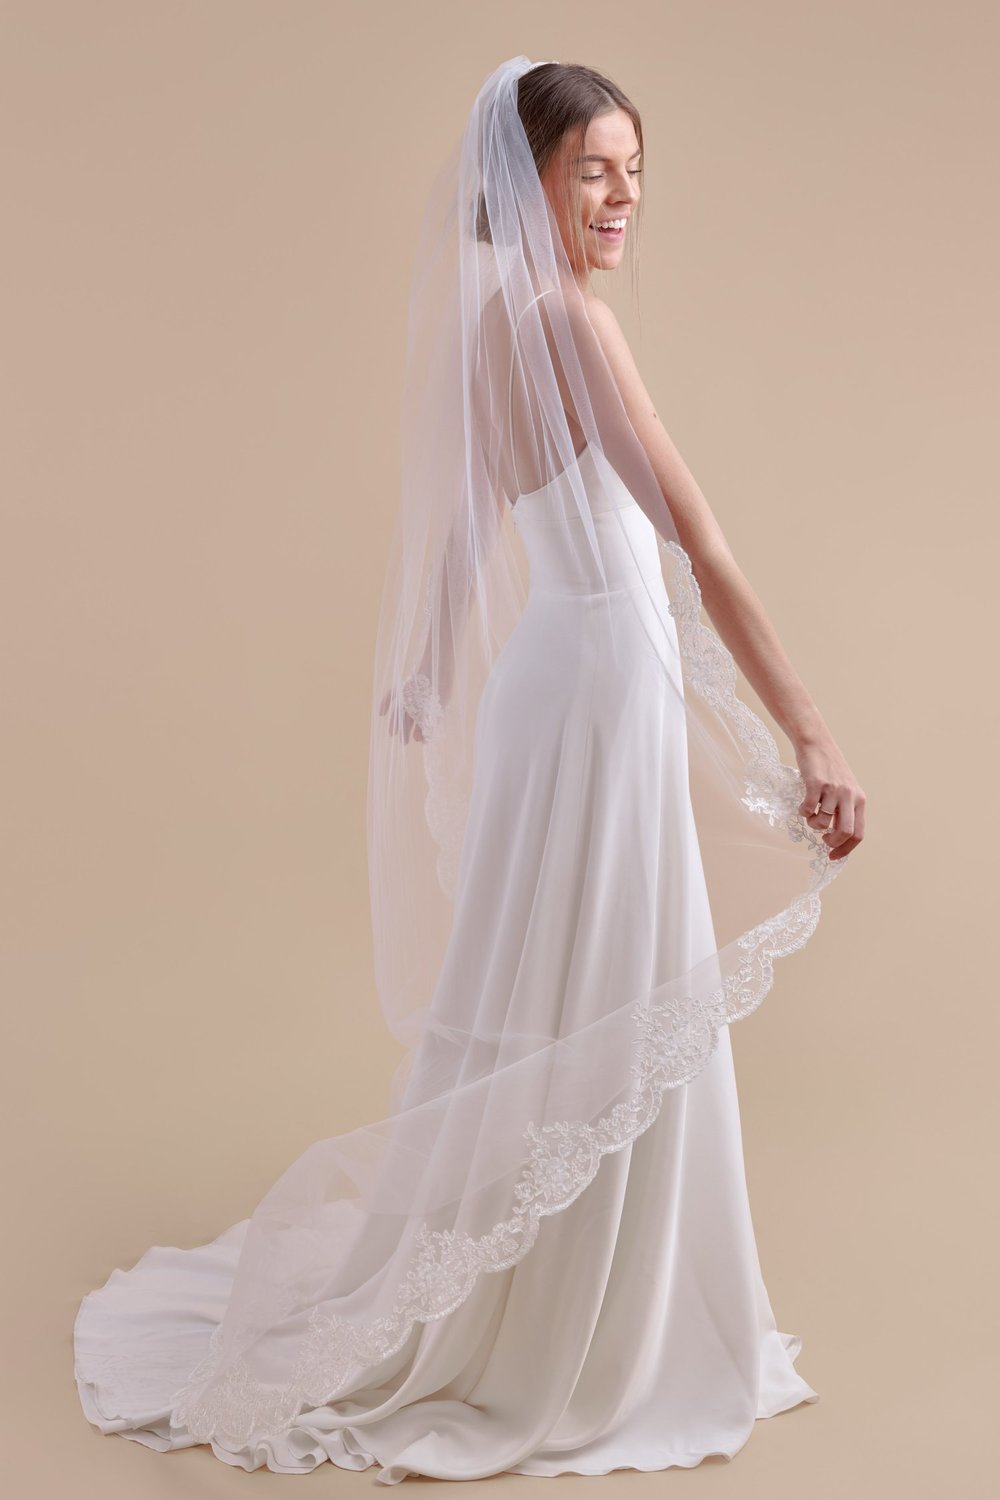 Anomalie, Simply Scalloped Court Length Veil, Affordable Veils.jpg